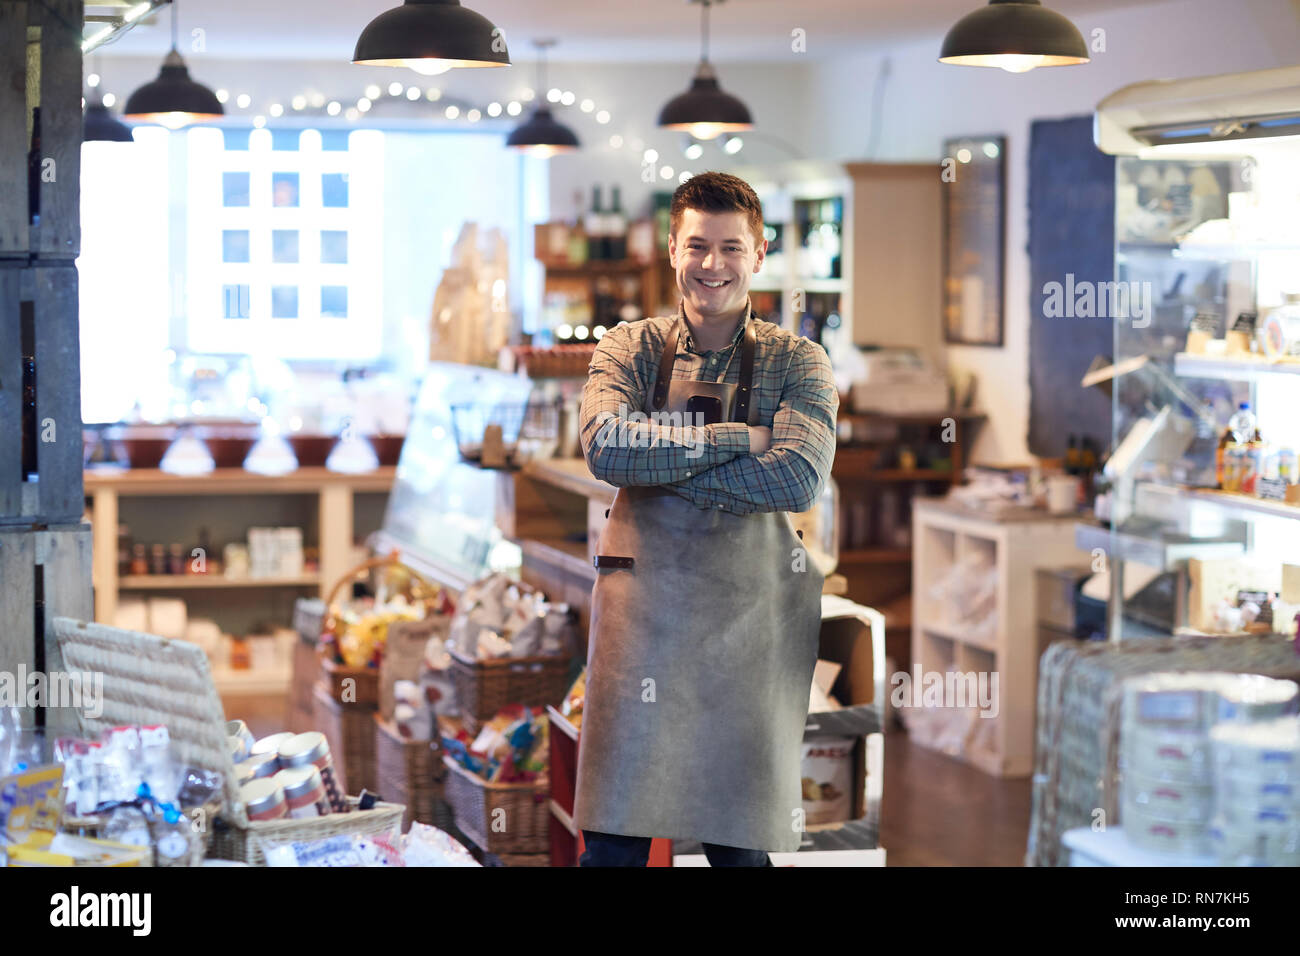 Portrait Of Smiling Male Owner Of Delicatessen Shop Wearing Apron Stock Photo